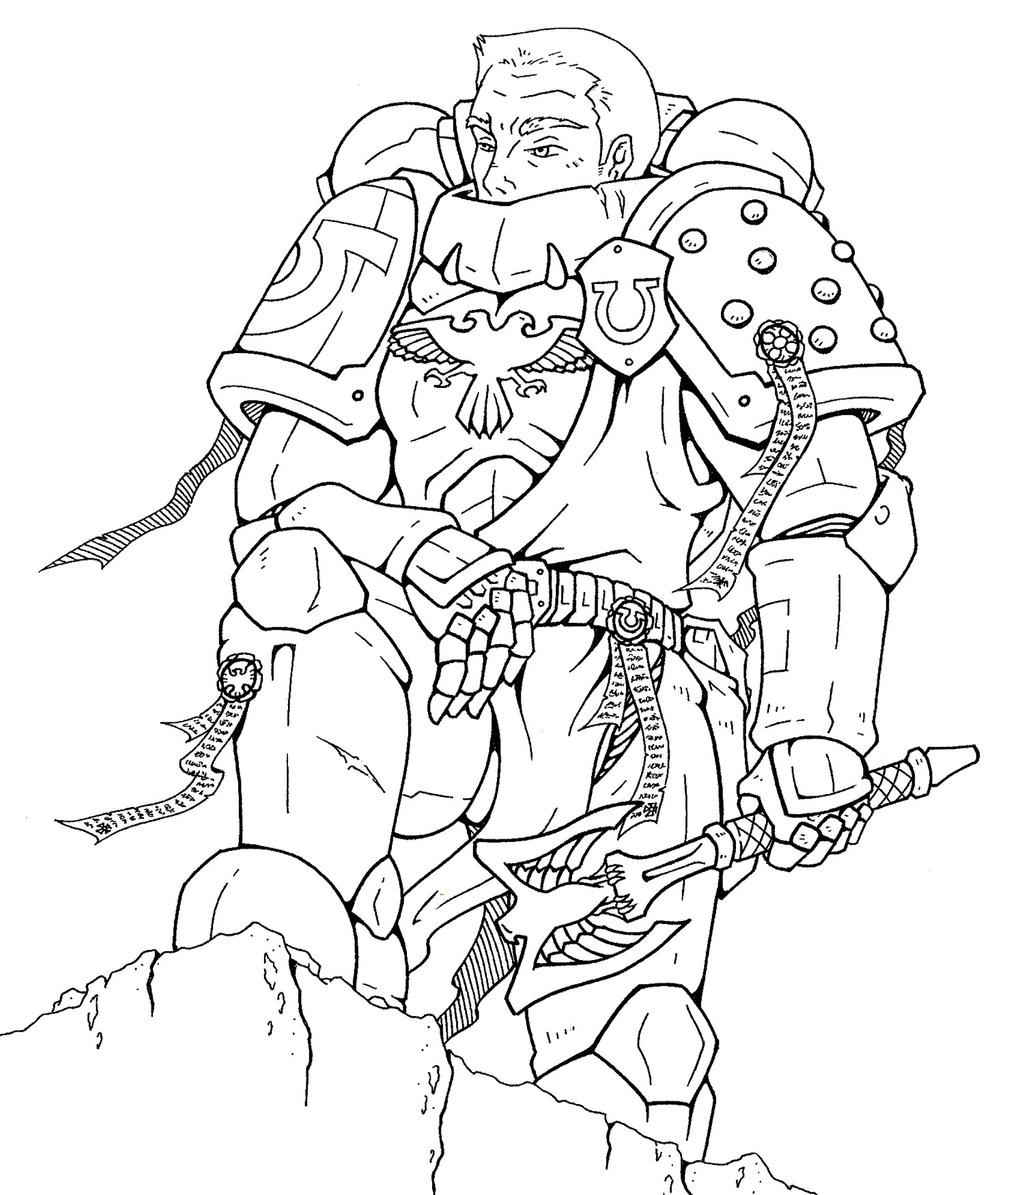 Space marine chaplain practice by koshindou on deviantart for Marine coloring pages